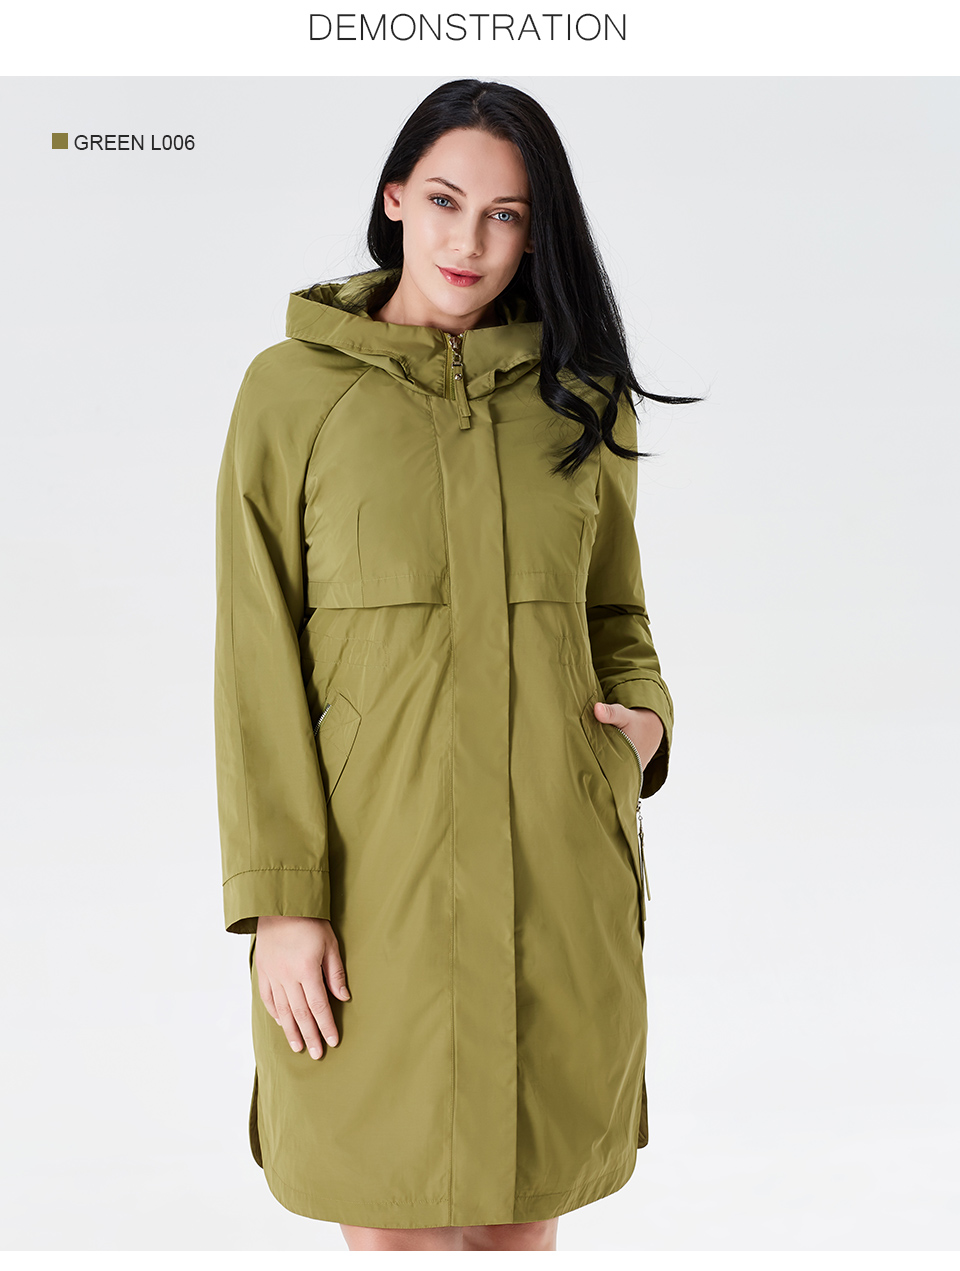 19 Trench Coat Spring And Autumn Women Causal coat Long Sleeve With Hood Solid color female moda muje High Quality new AS-9046 6